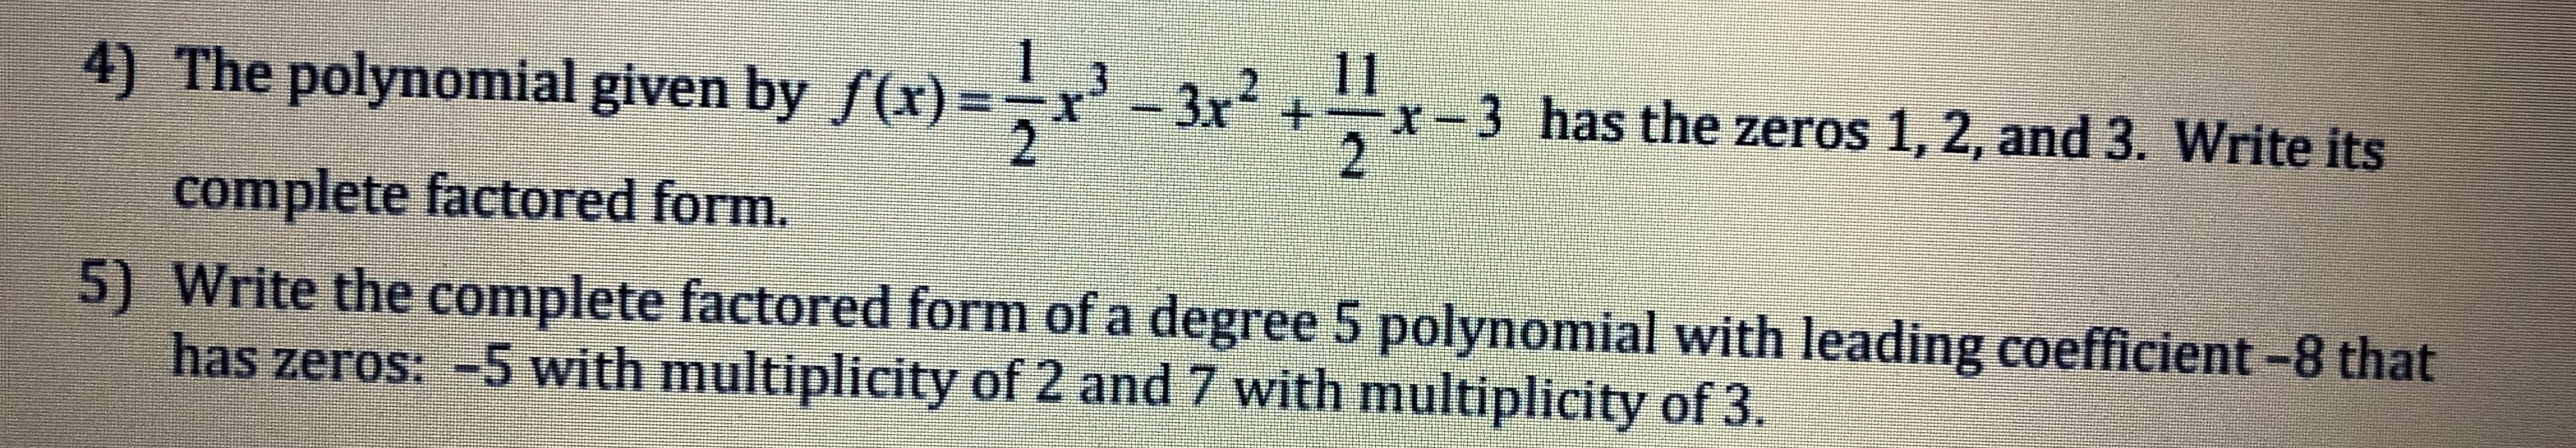 4) The polynomial given by f(x) x2+r-3 has the zeros 1, 2, and 3. Write its complete factored form. 5) Write the complete factored form of a degree 5 polynomial with leading coefficient -8 that has zeros: -5 with multiplicity of 2 and 7 with multiplicity of 3.